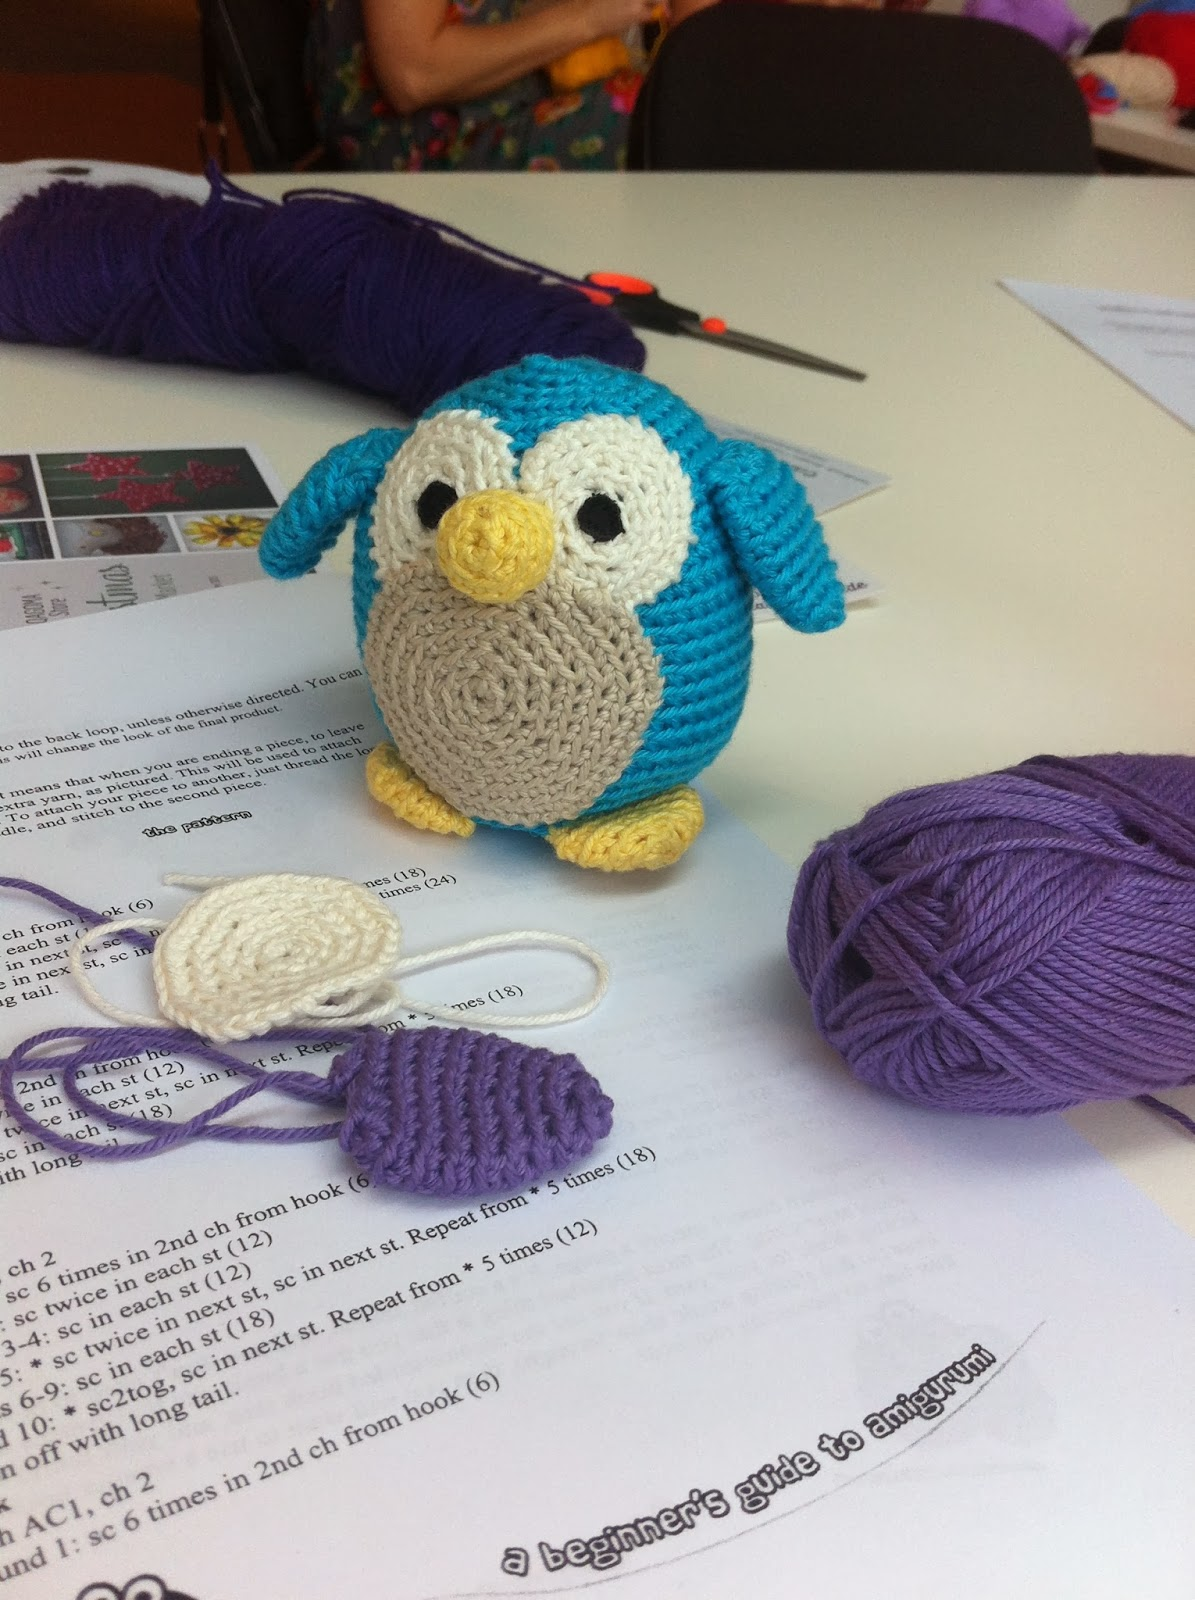 Amigurumi Beginners Guide : edward and lilly: amigurumi for beginners